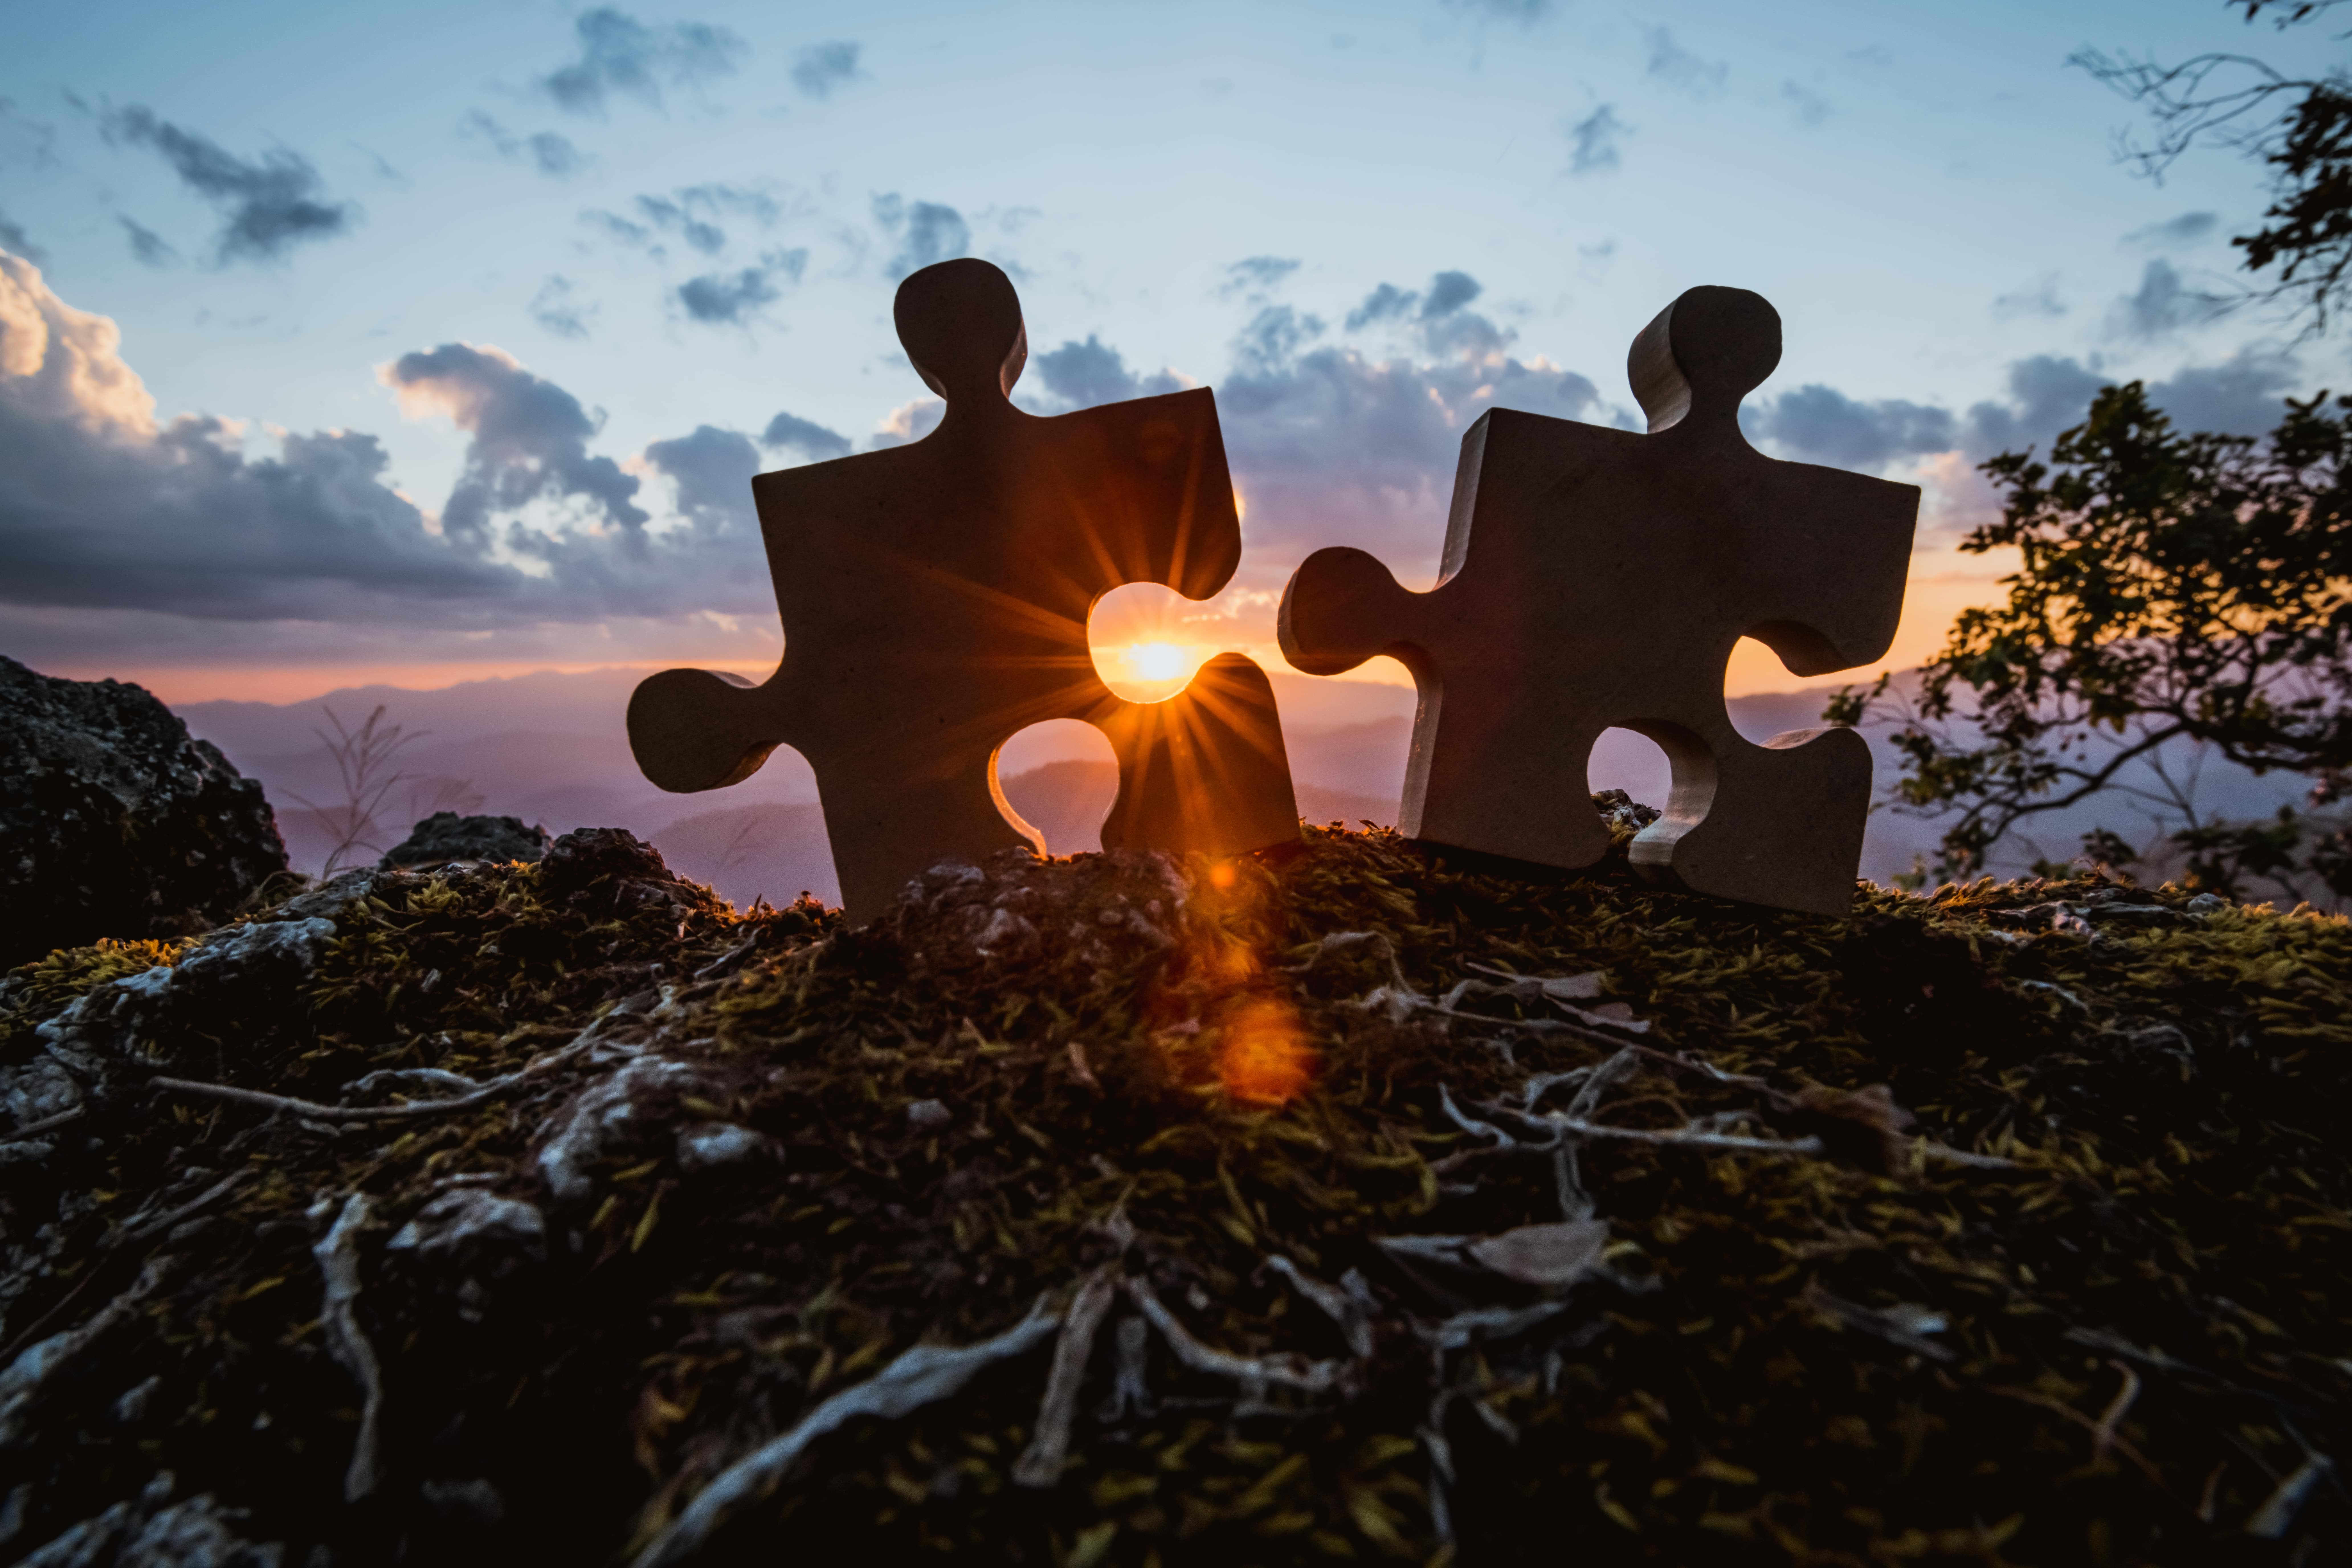 Wimmer puzzle pieces with Sunset